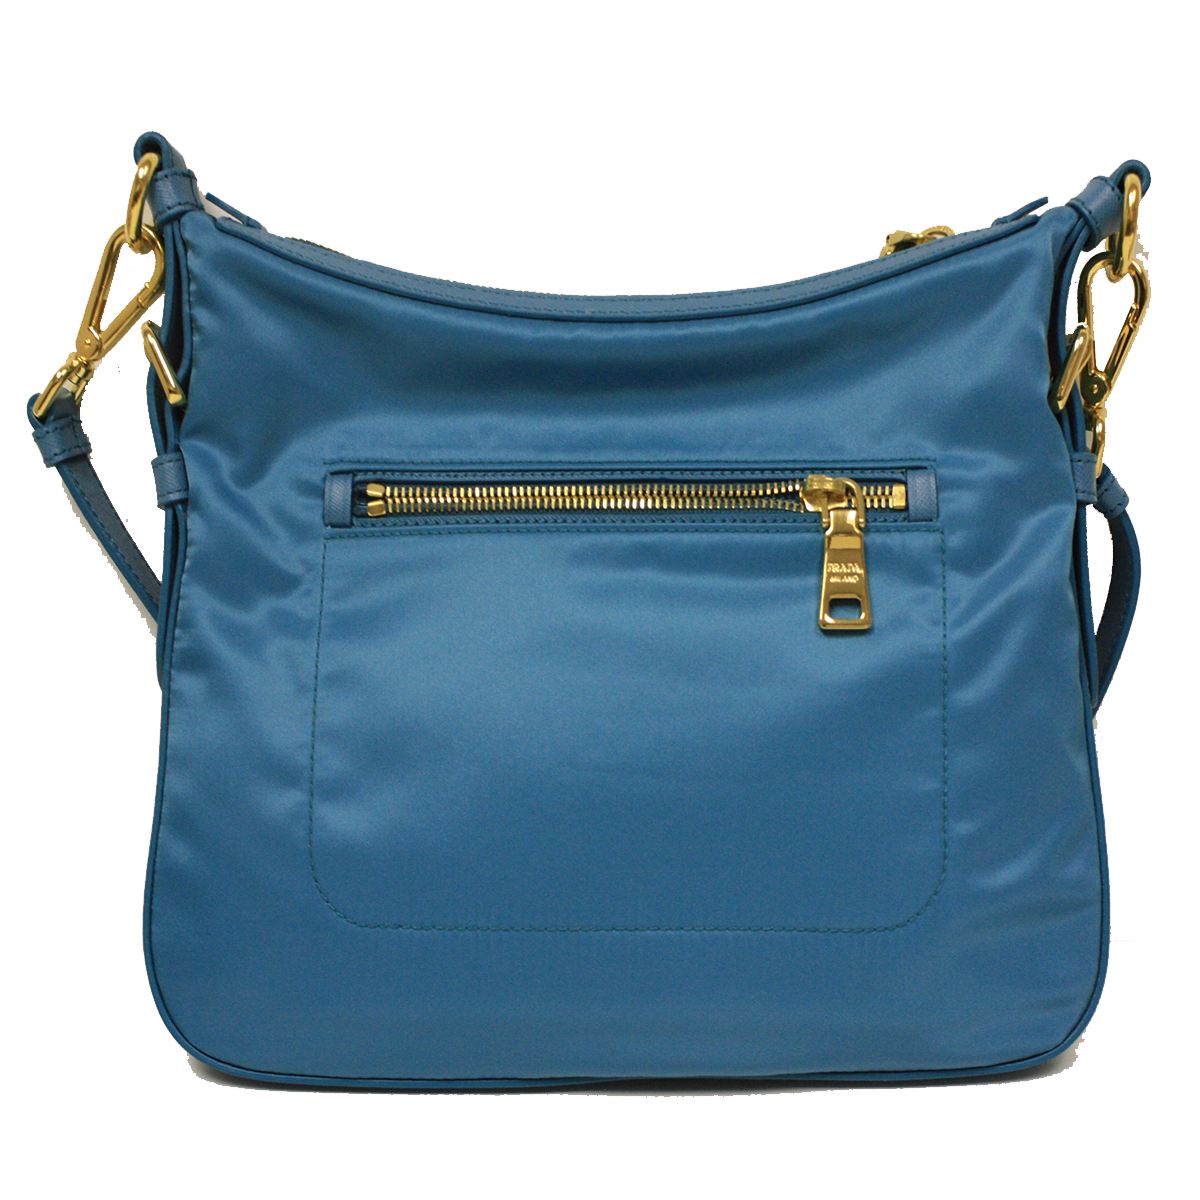 Functional and stylish women's crossbody handbags. Although the handbag is a functional necessity, it's a reflection of your taste and style. When these two things are in sync, life gets a little easier, especially with this handbag type.